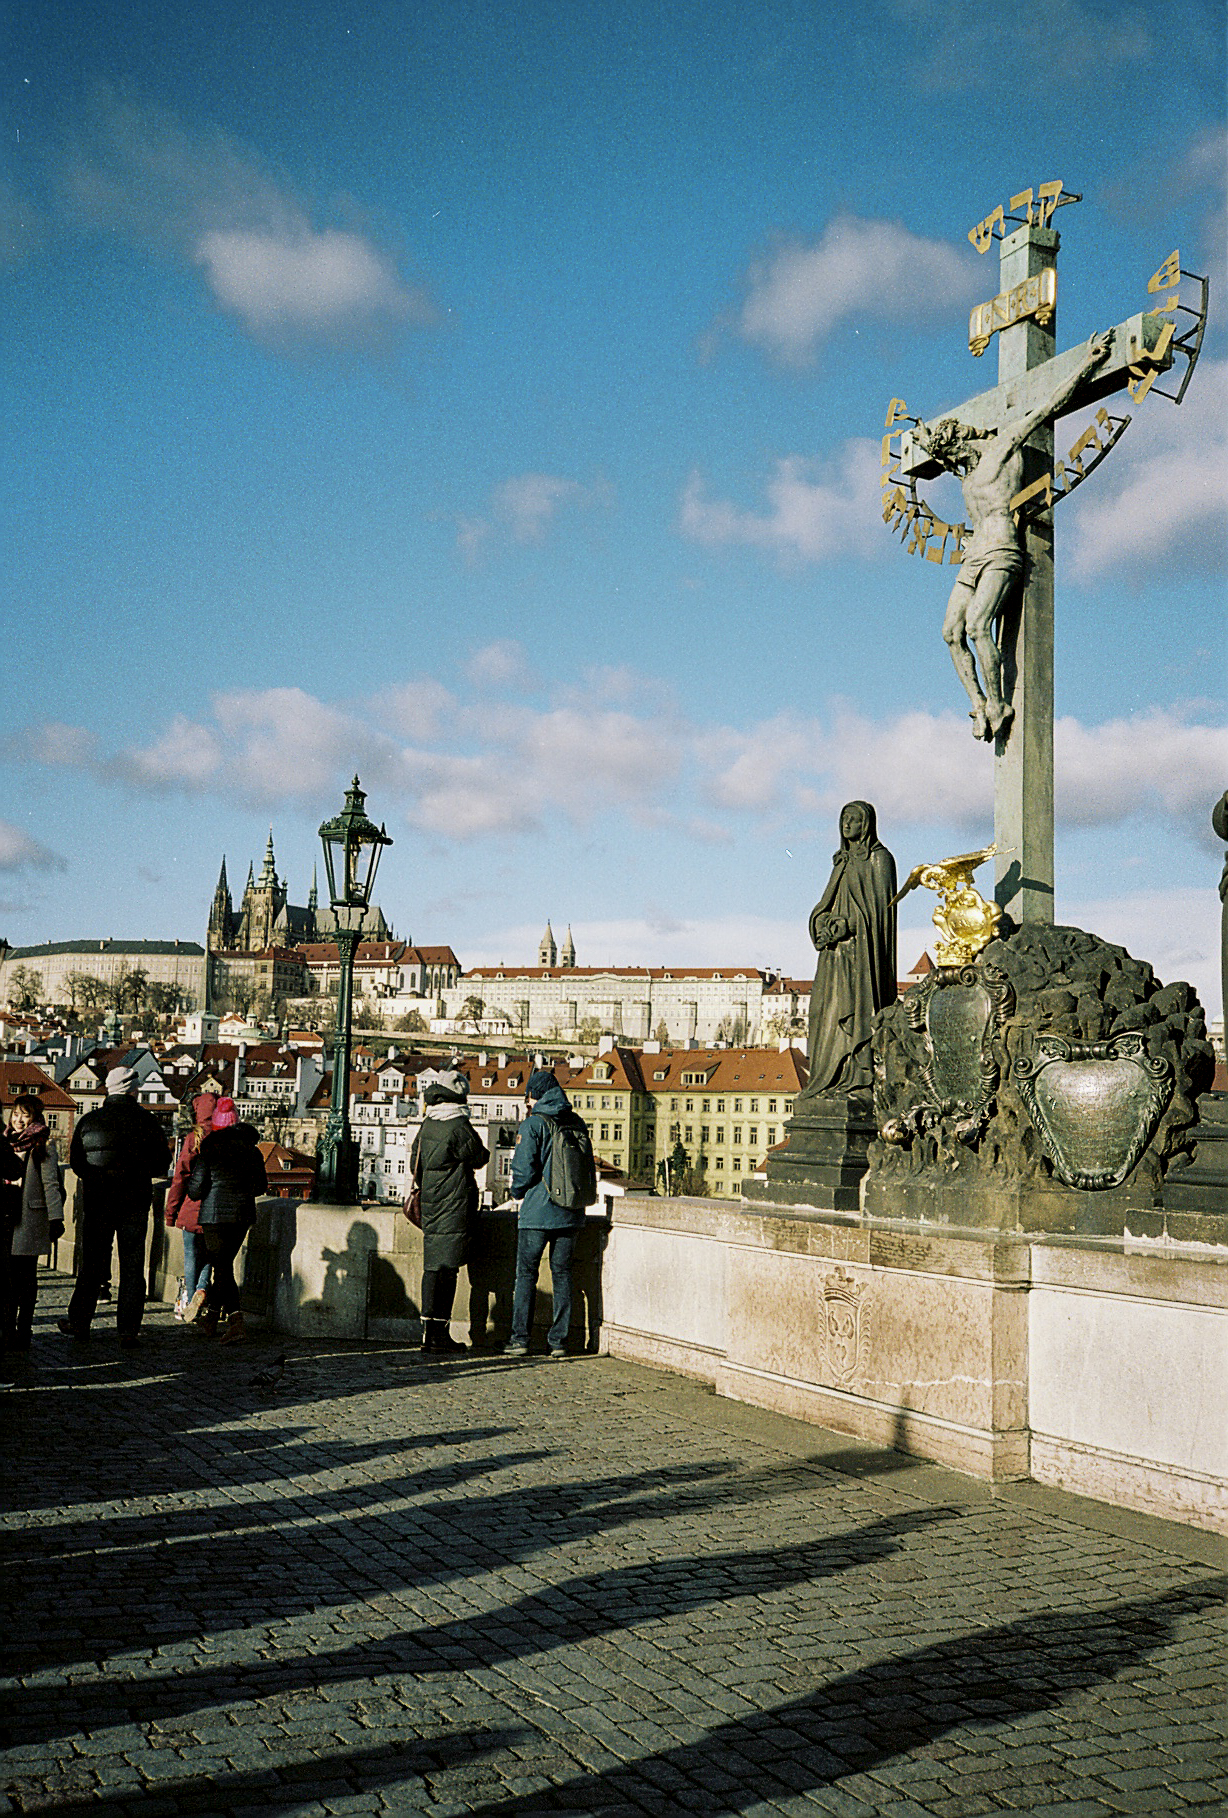 Statue on the Charles Bridge.